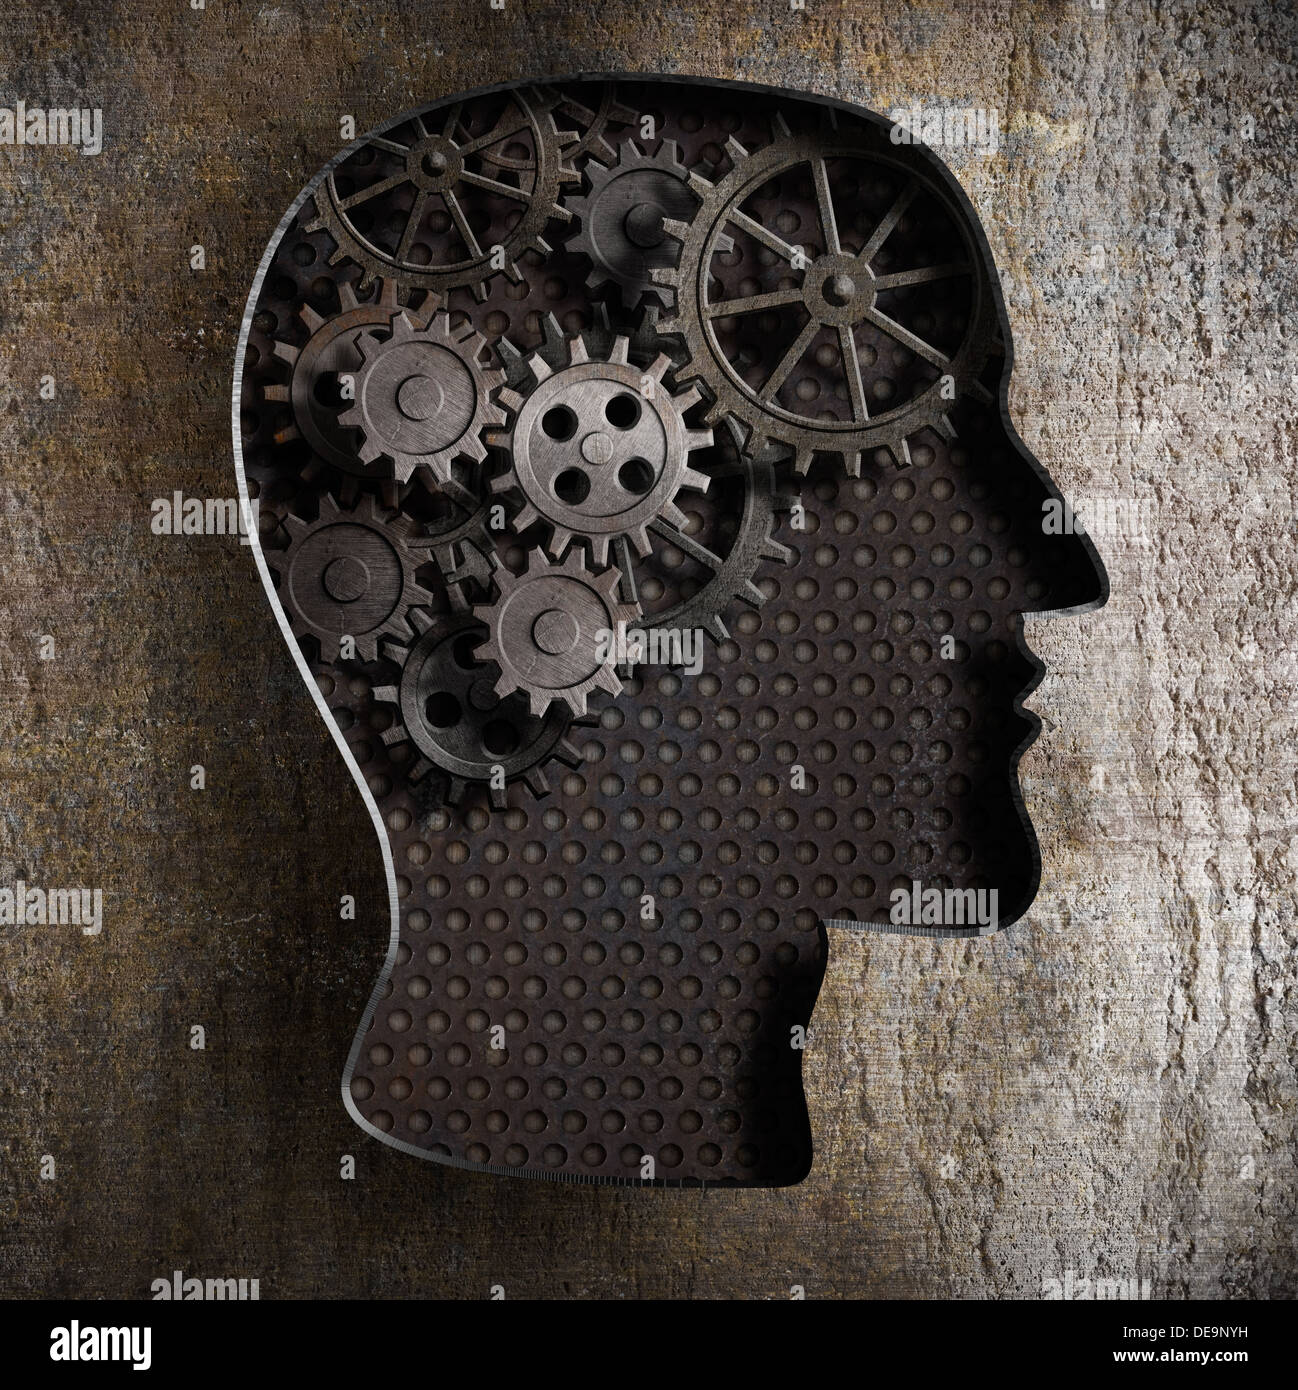 Brain work concept: gears and cogs from old rusty metal - Stock Image